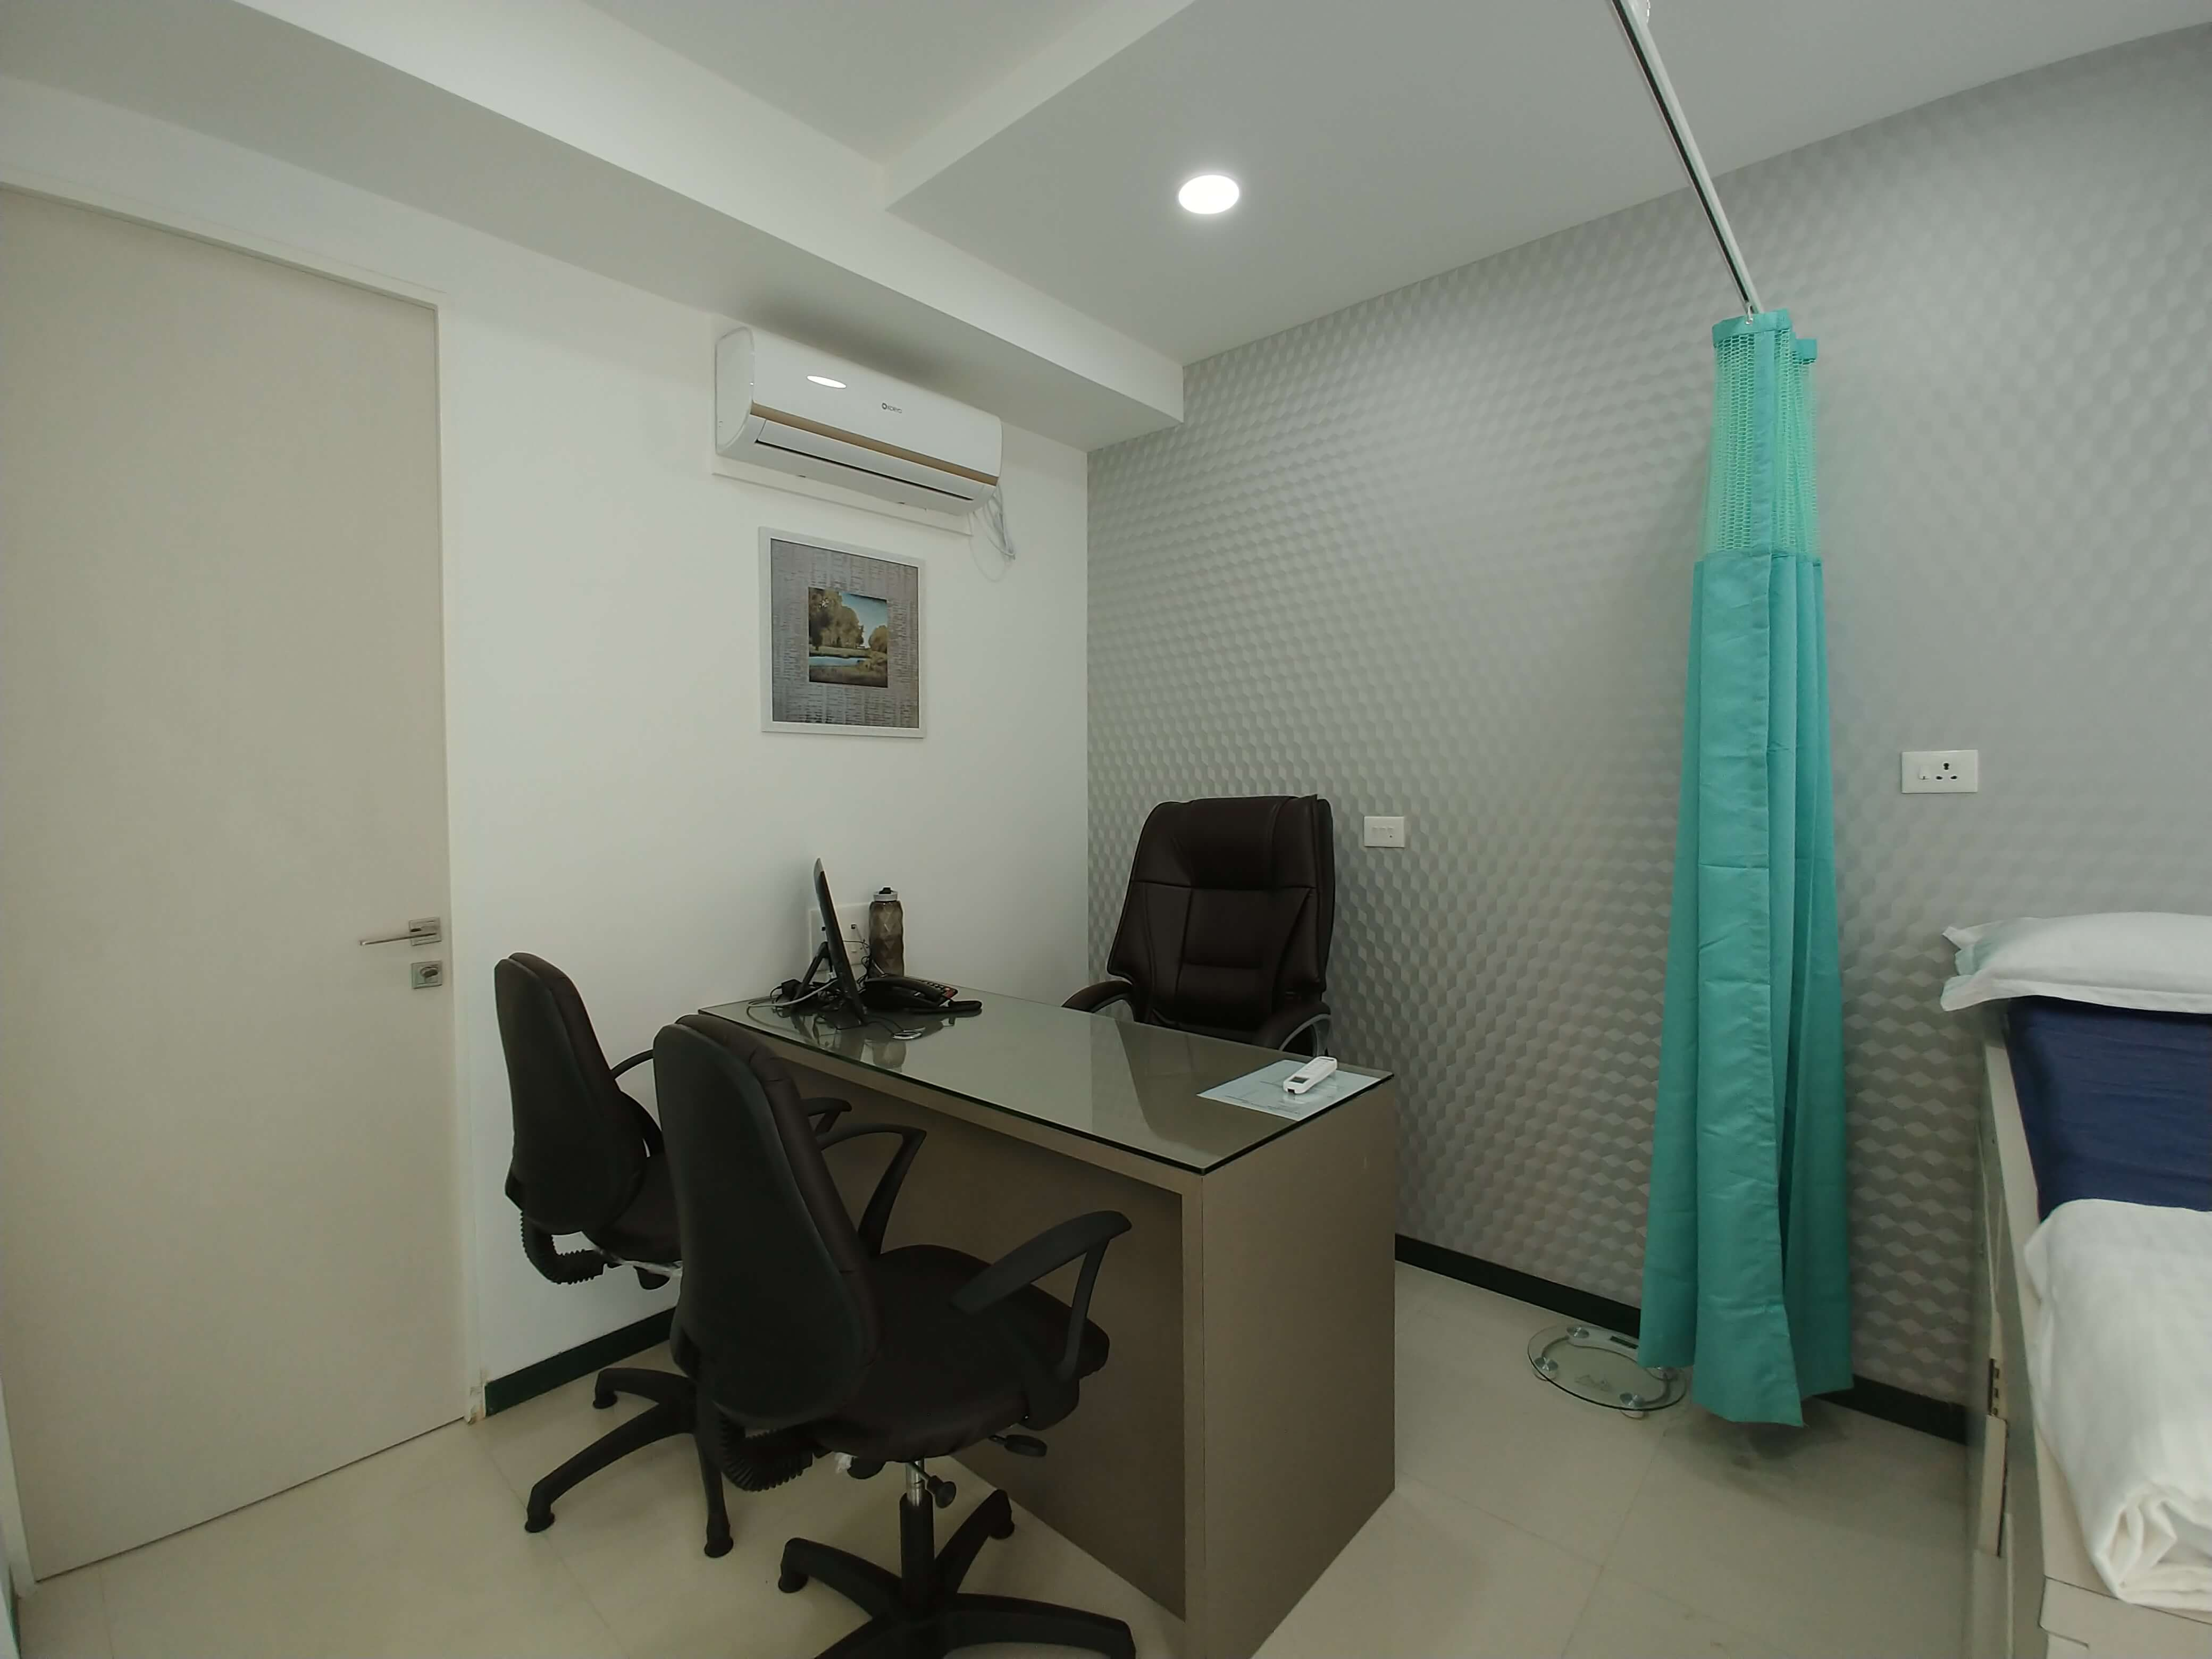 Patient checking room